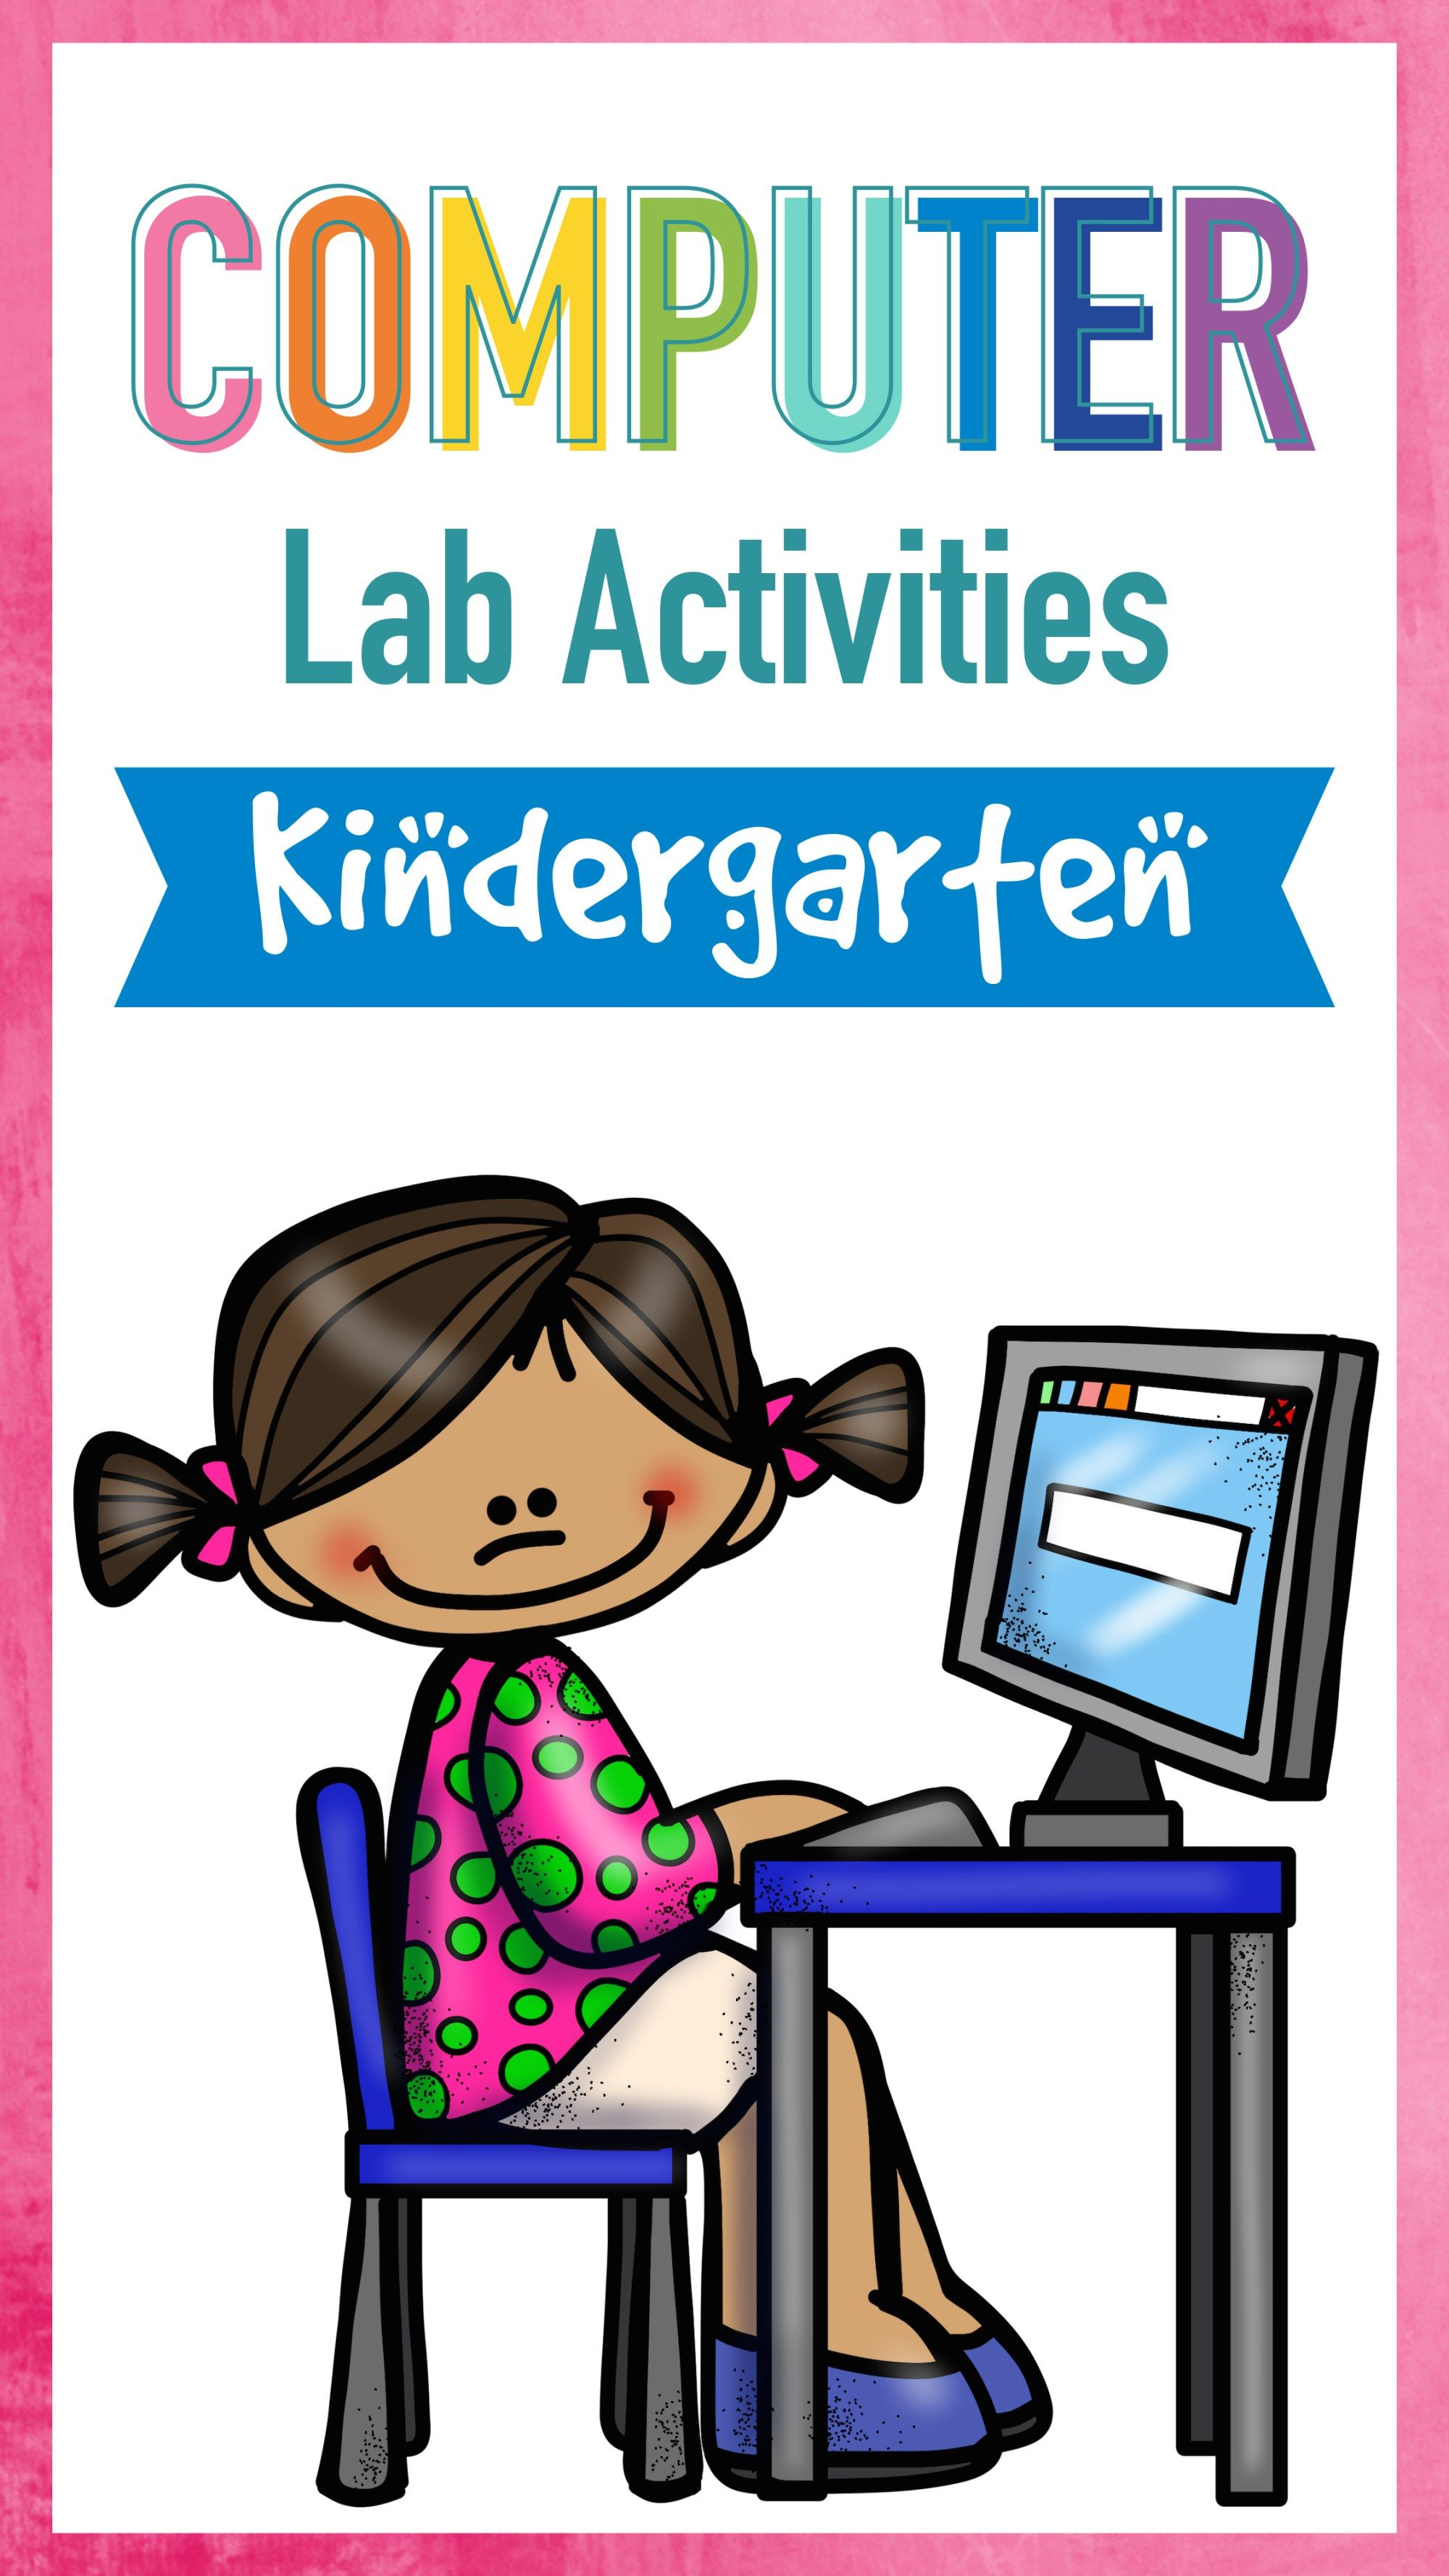 Technology Curriculum Lesson Plans And Activities For The